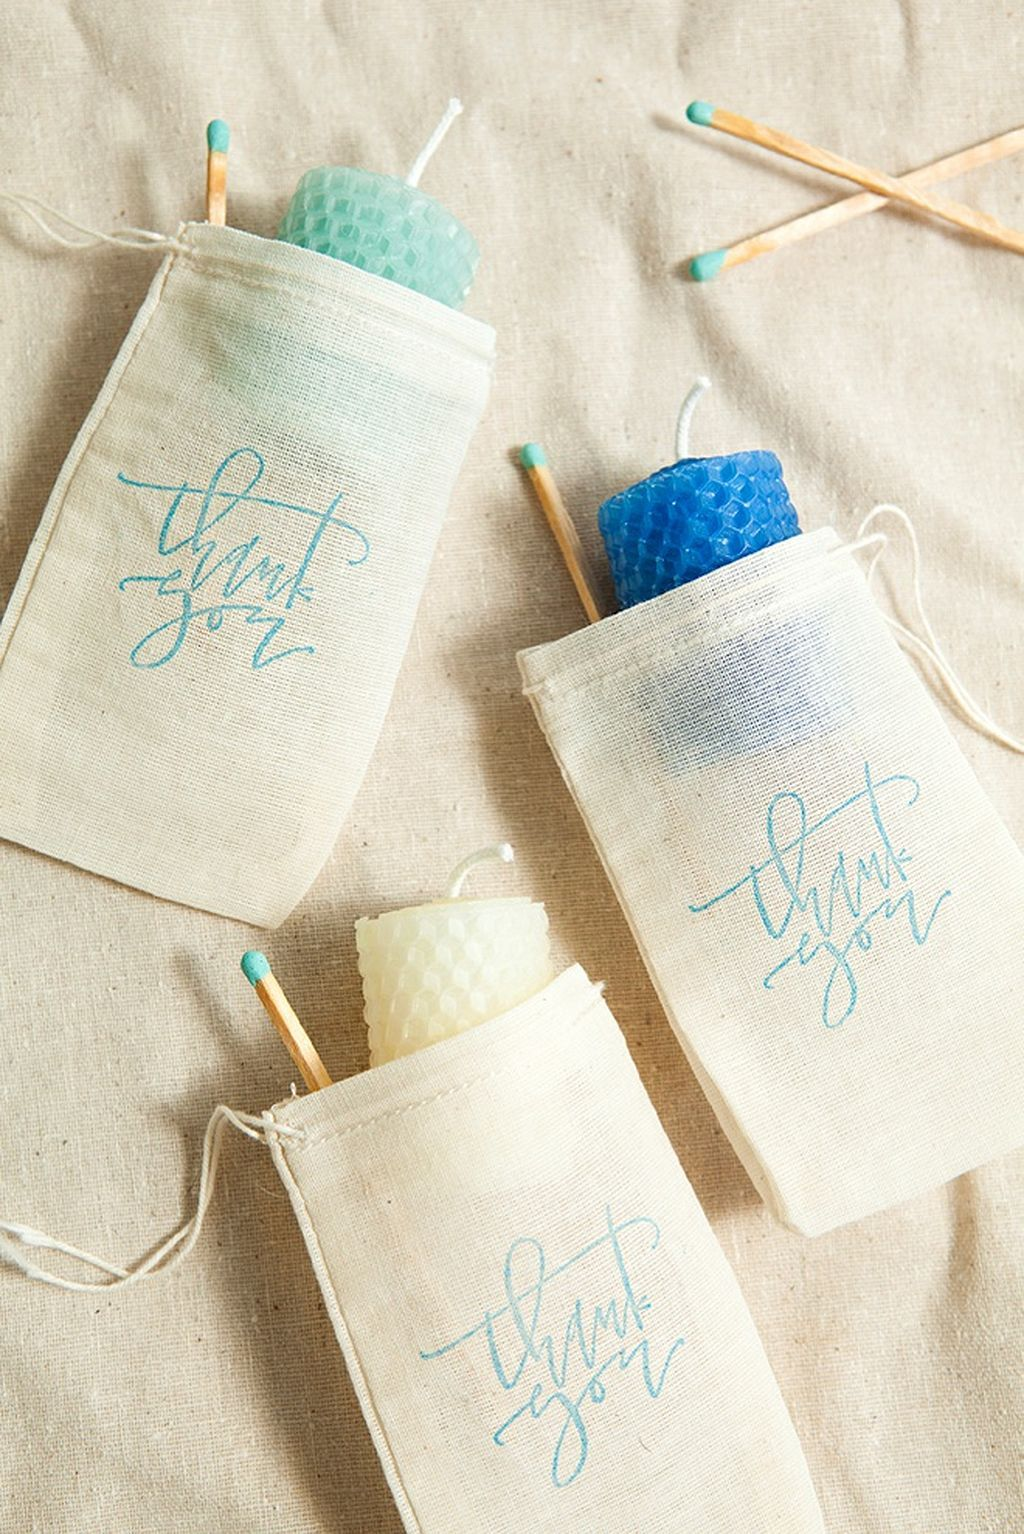 60+ Wedding Souvenirs DIY Ideas | Souvenir, DIY ideas and Favors